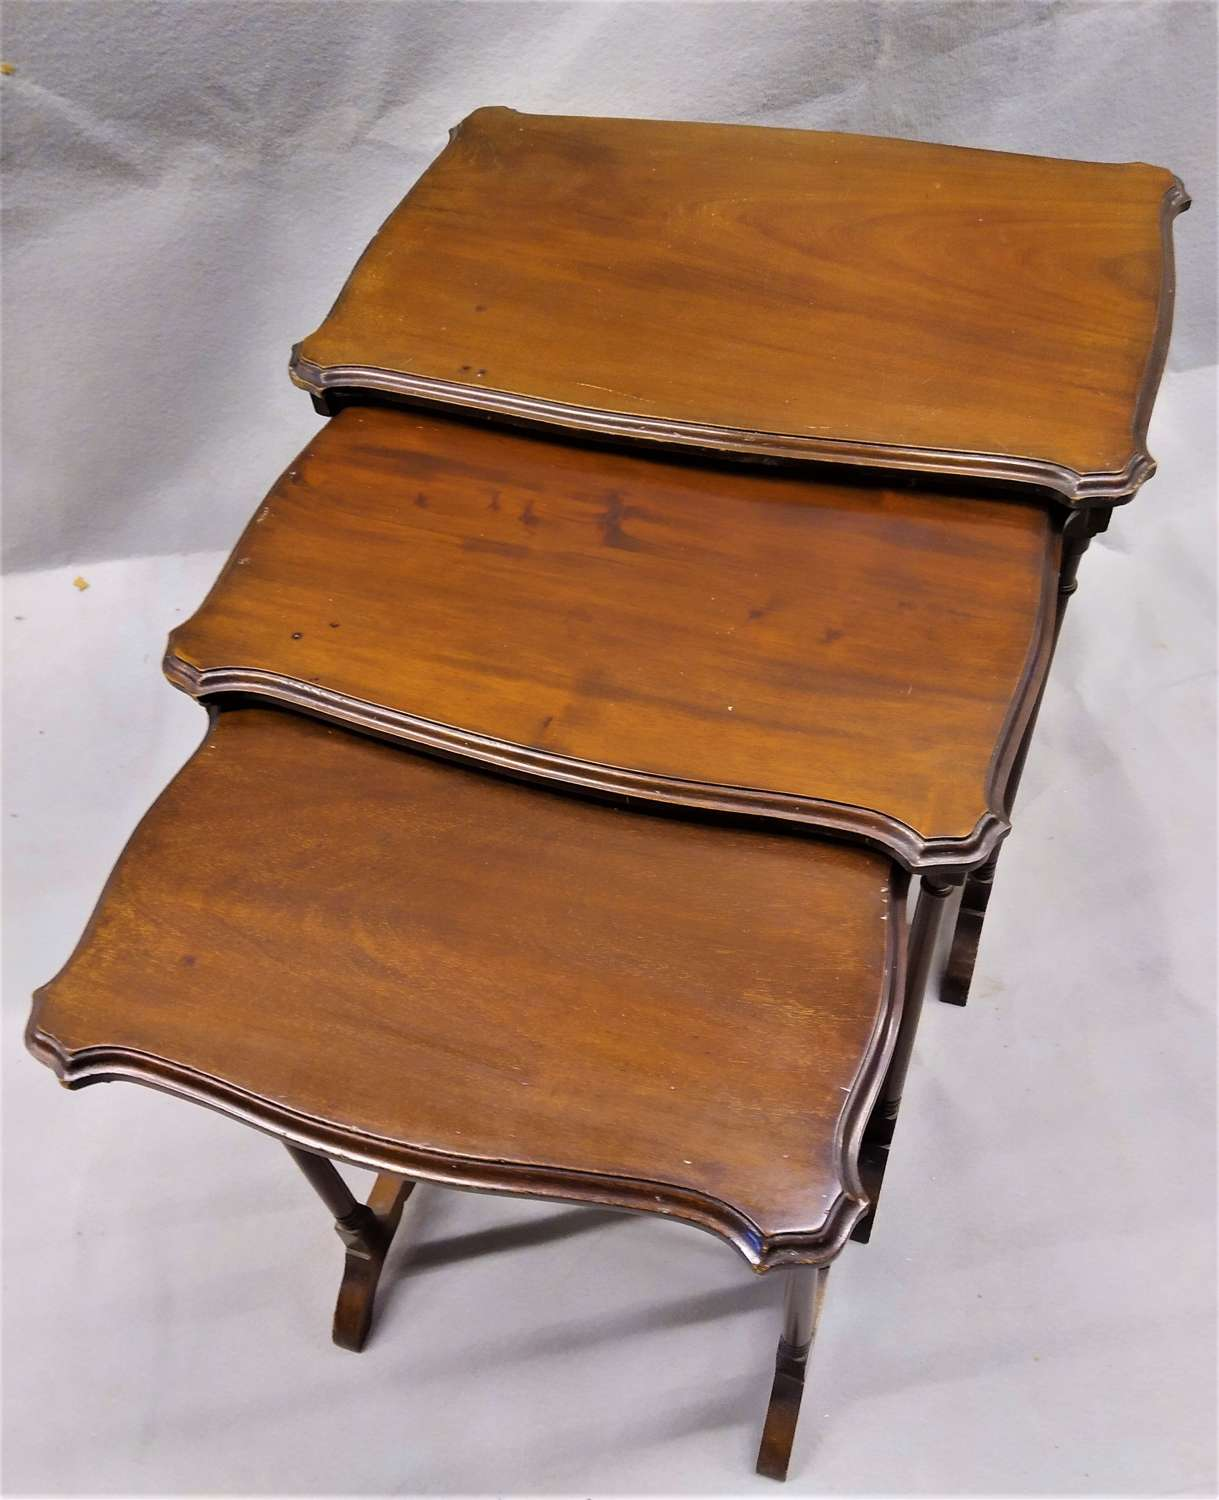 Edwardian mahogany nest of tables circa 1920